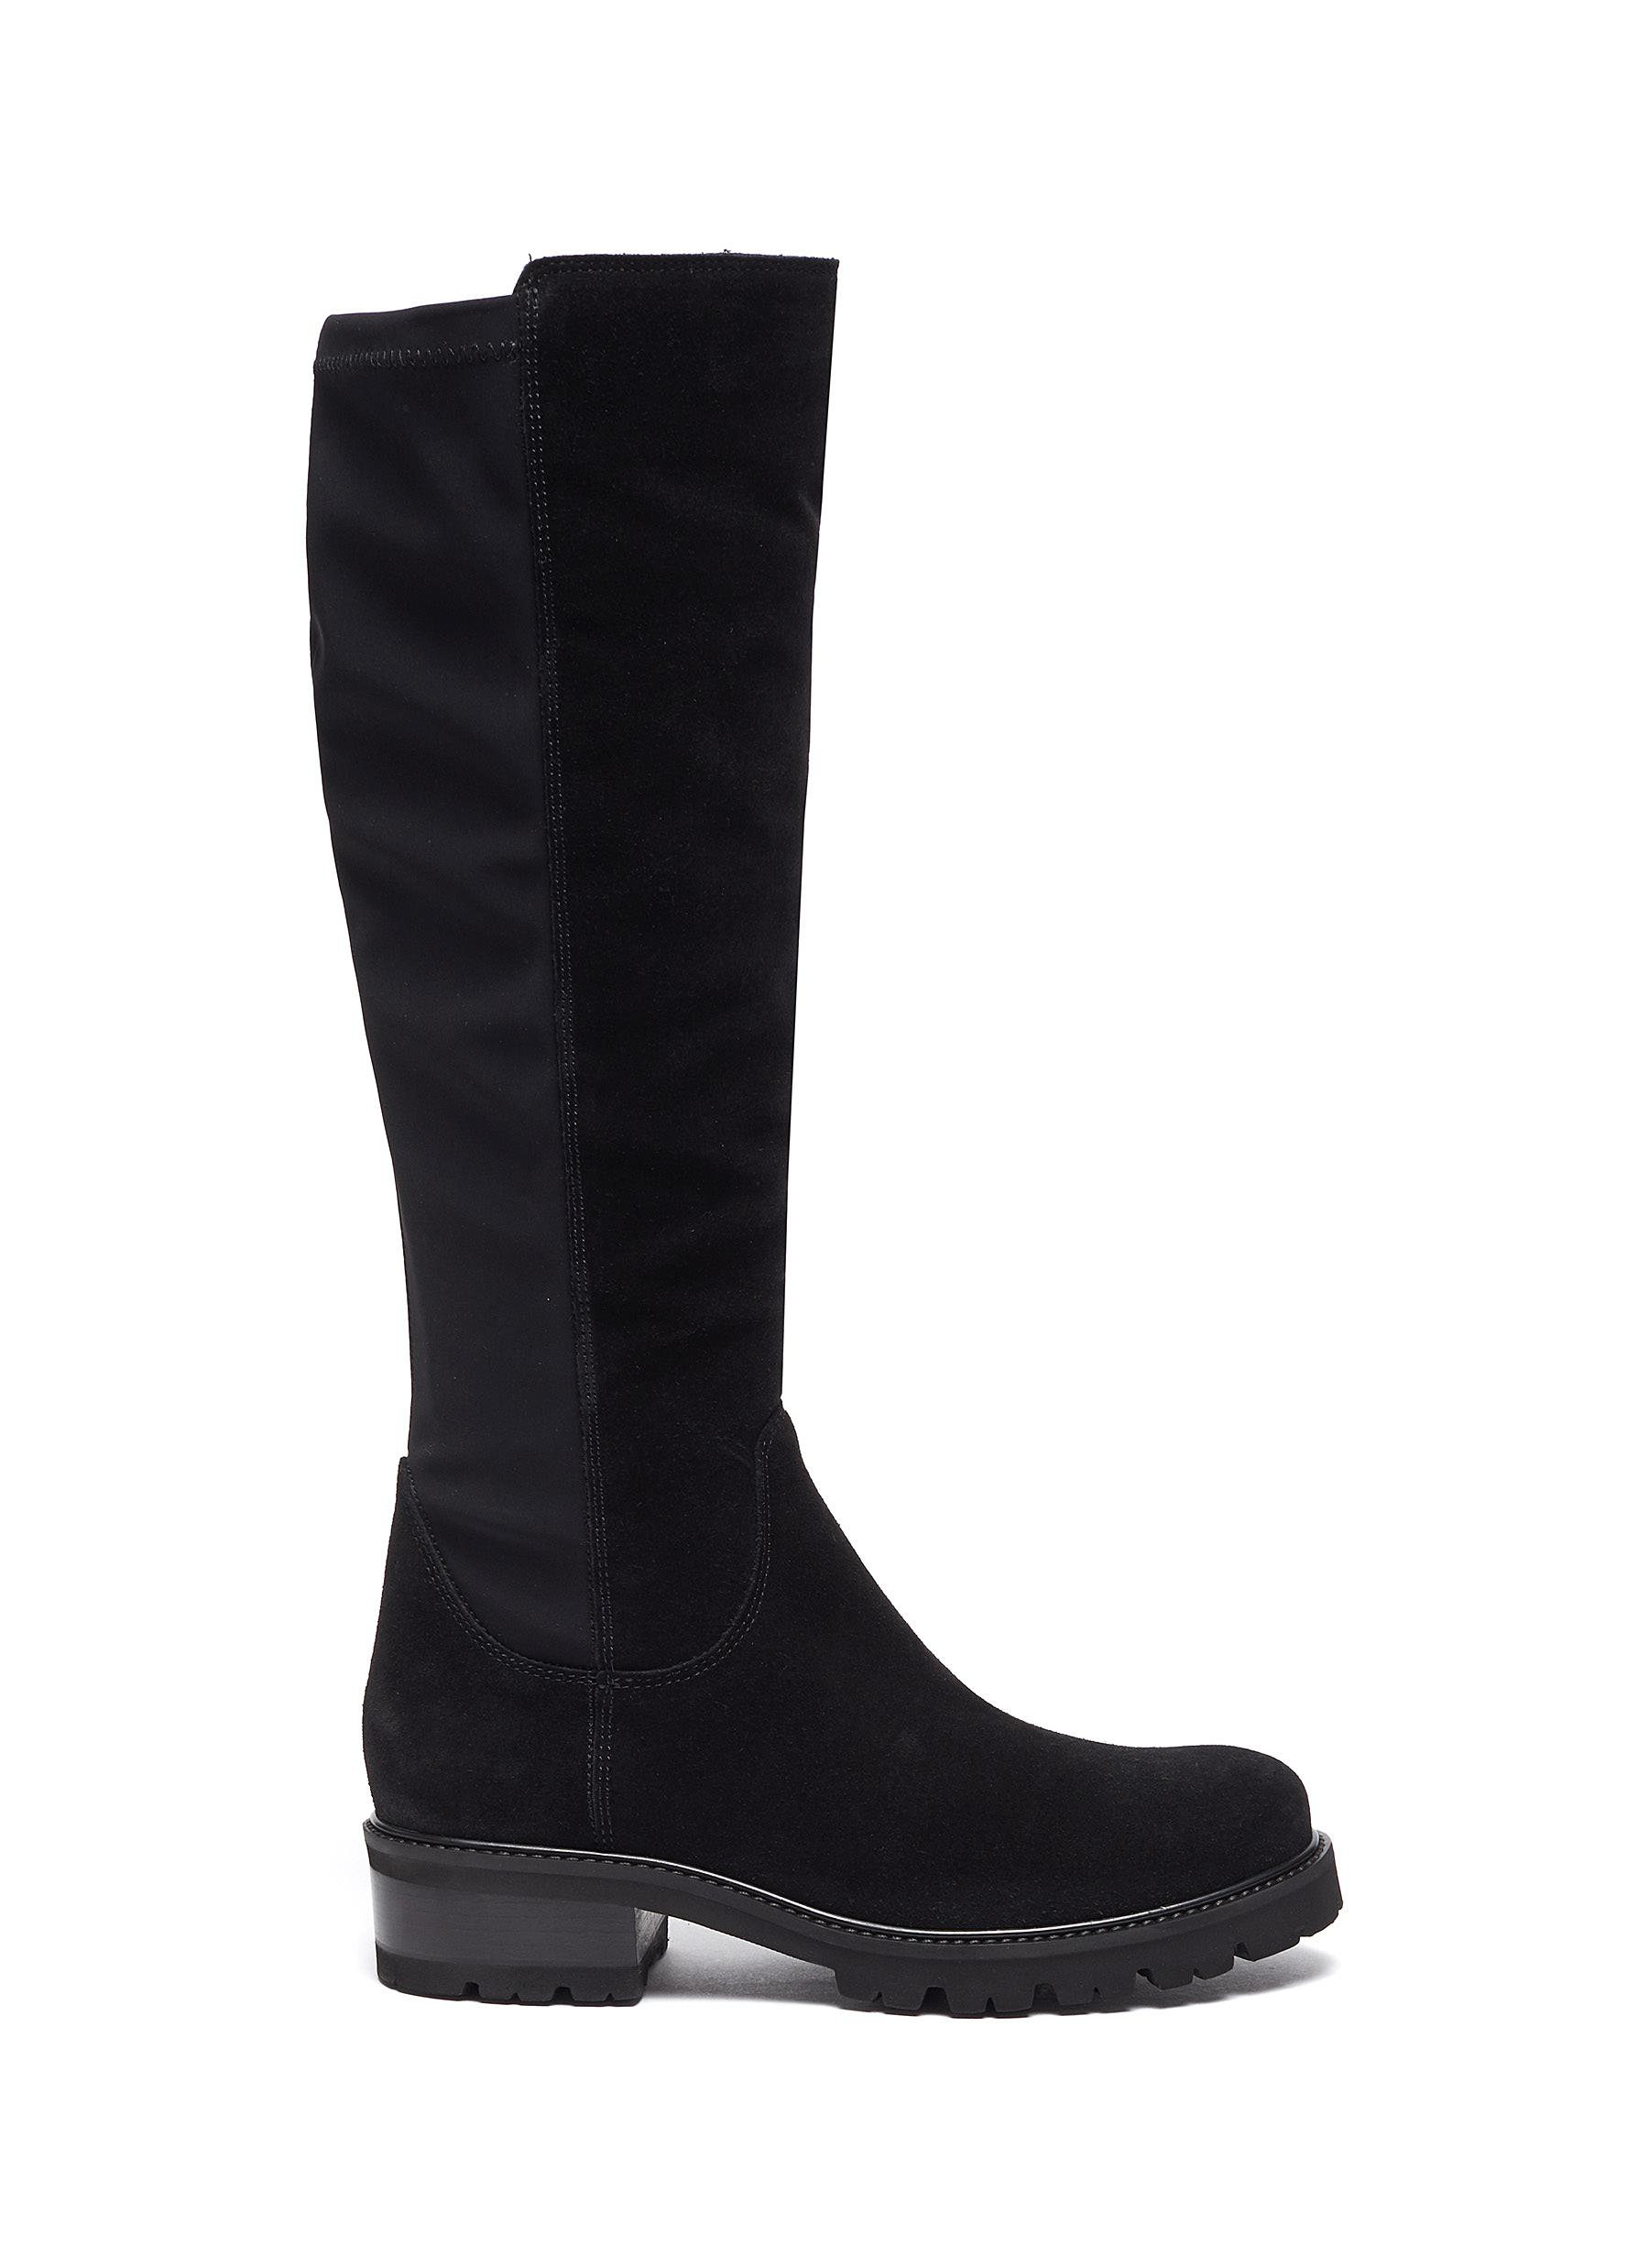 Cagney' Tall Suede Knee High Boots